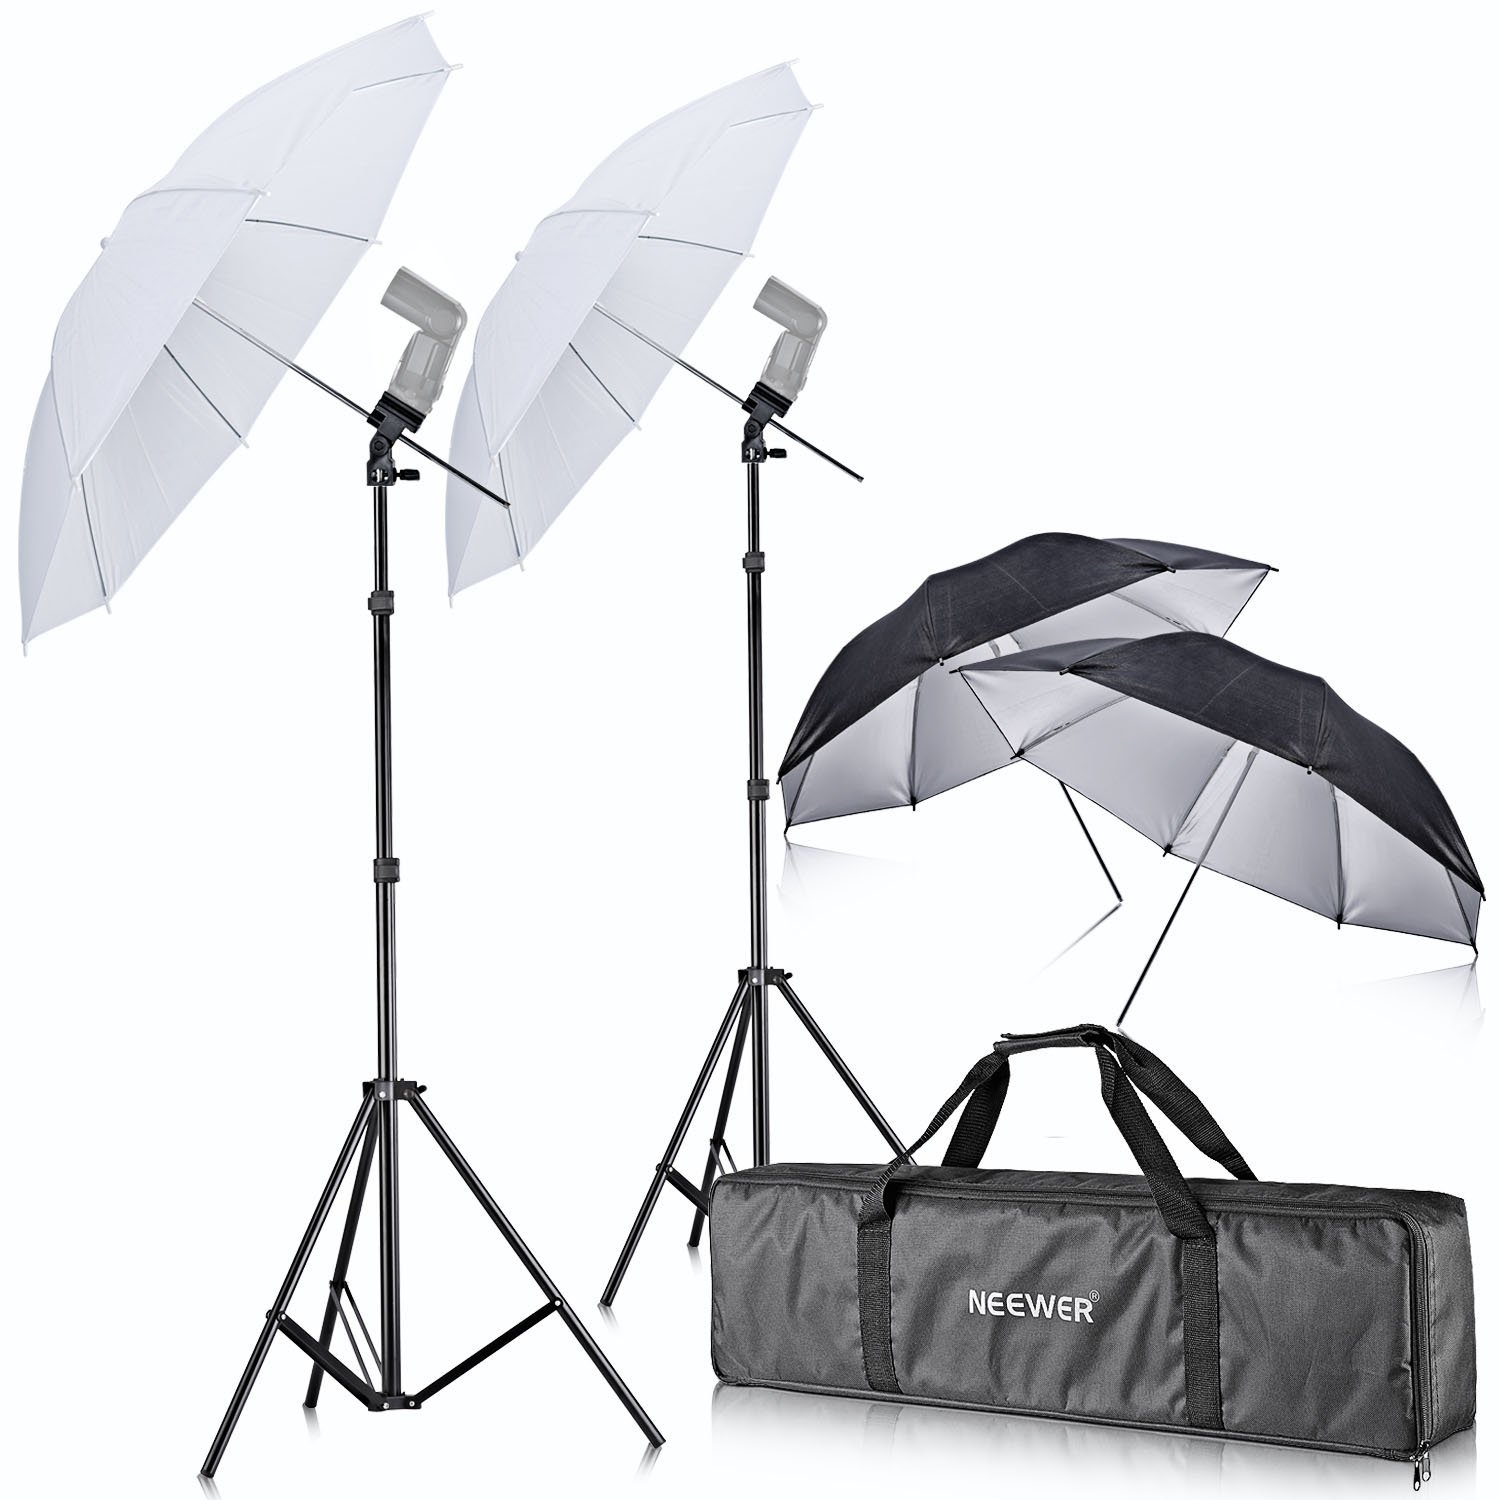 Neewer Off Camera Double Speedlight Flash ShoeMount Swivel Soft Umbrella Kit for Canon 430EX II,580EX II,600EX-RT,Nikon SB600 SB800 SB900,Yongnuo YN 560,YN 565,Neewer TT560,TT680,TT850,TT860 by Neewer (Image #1)